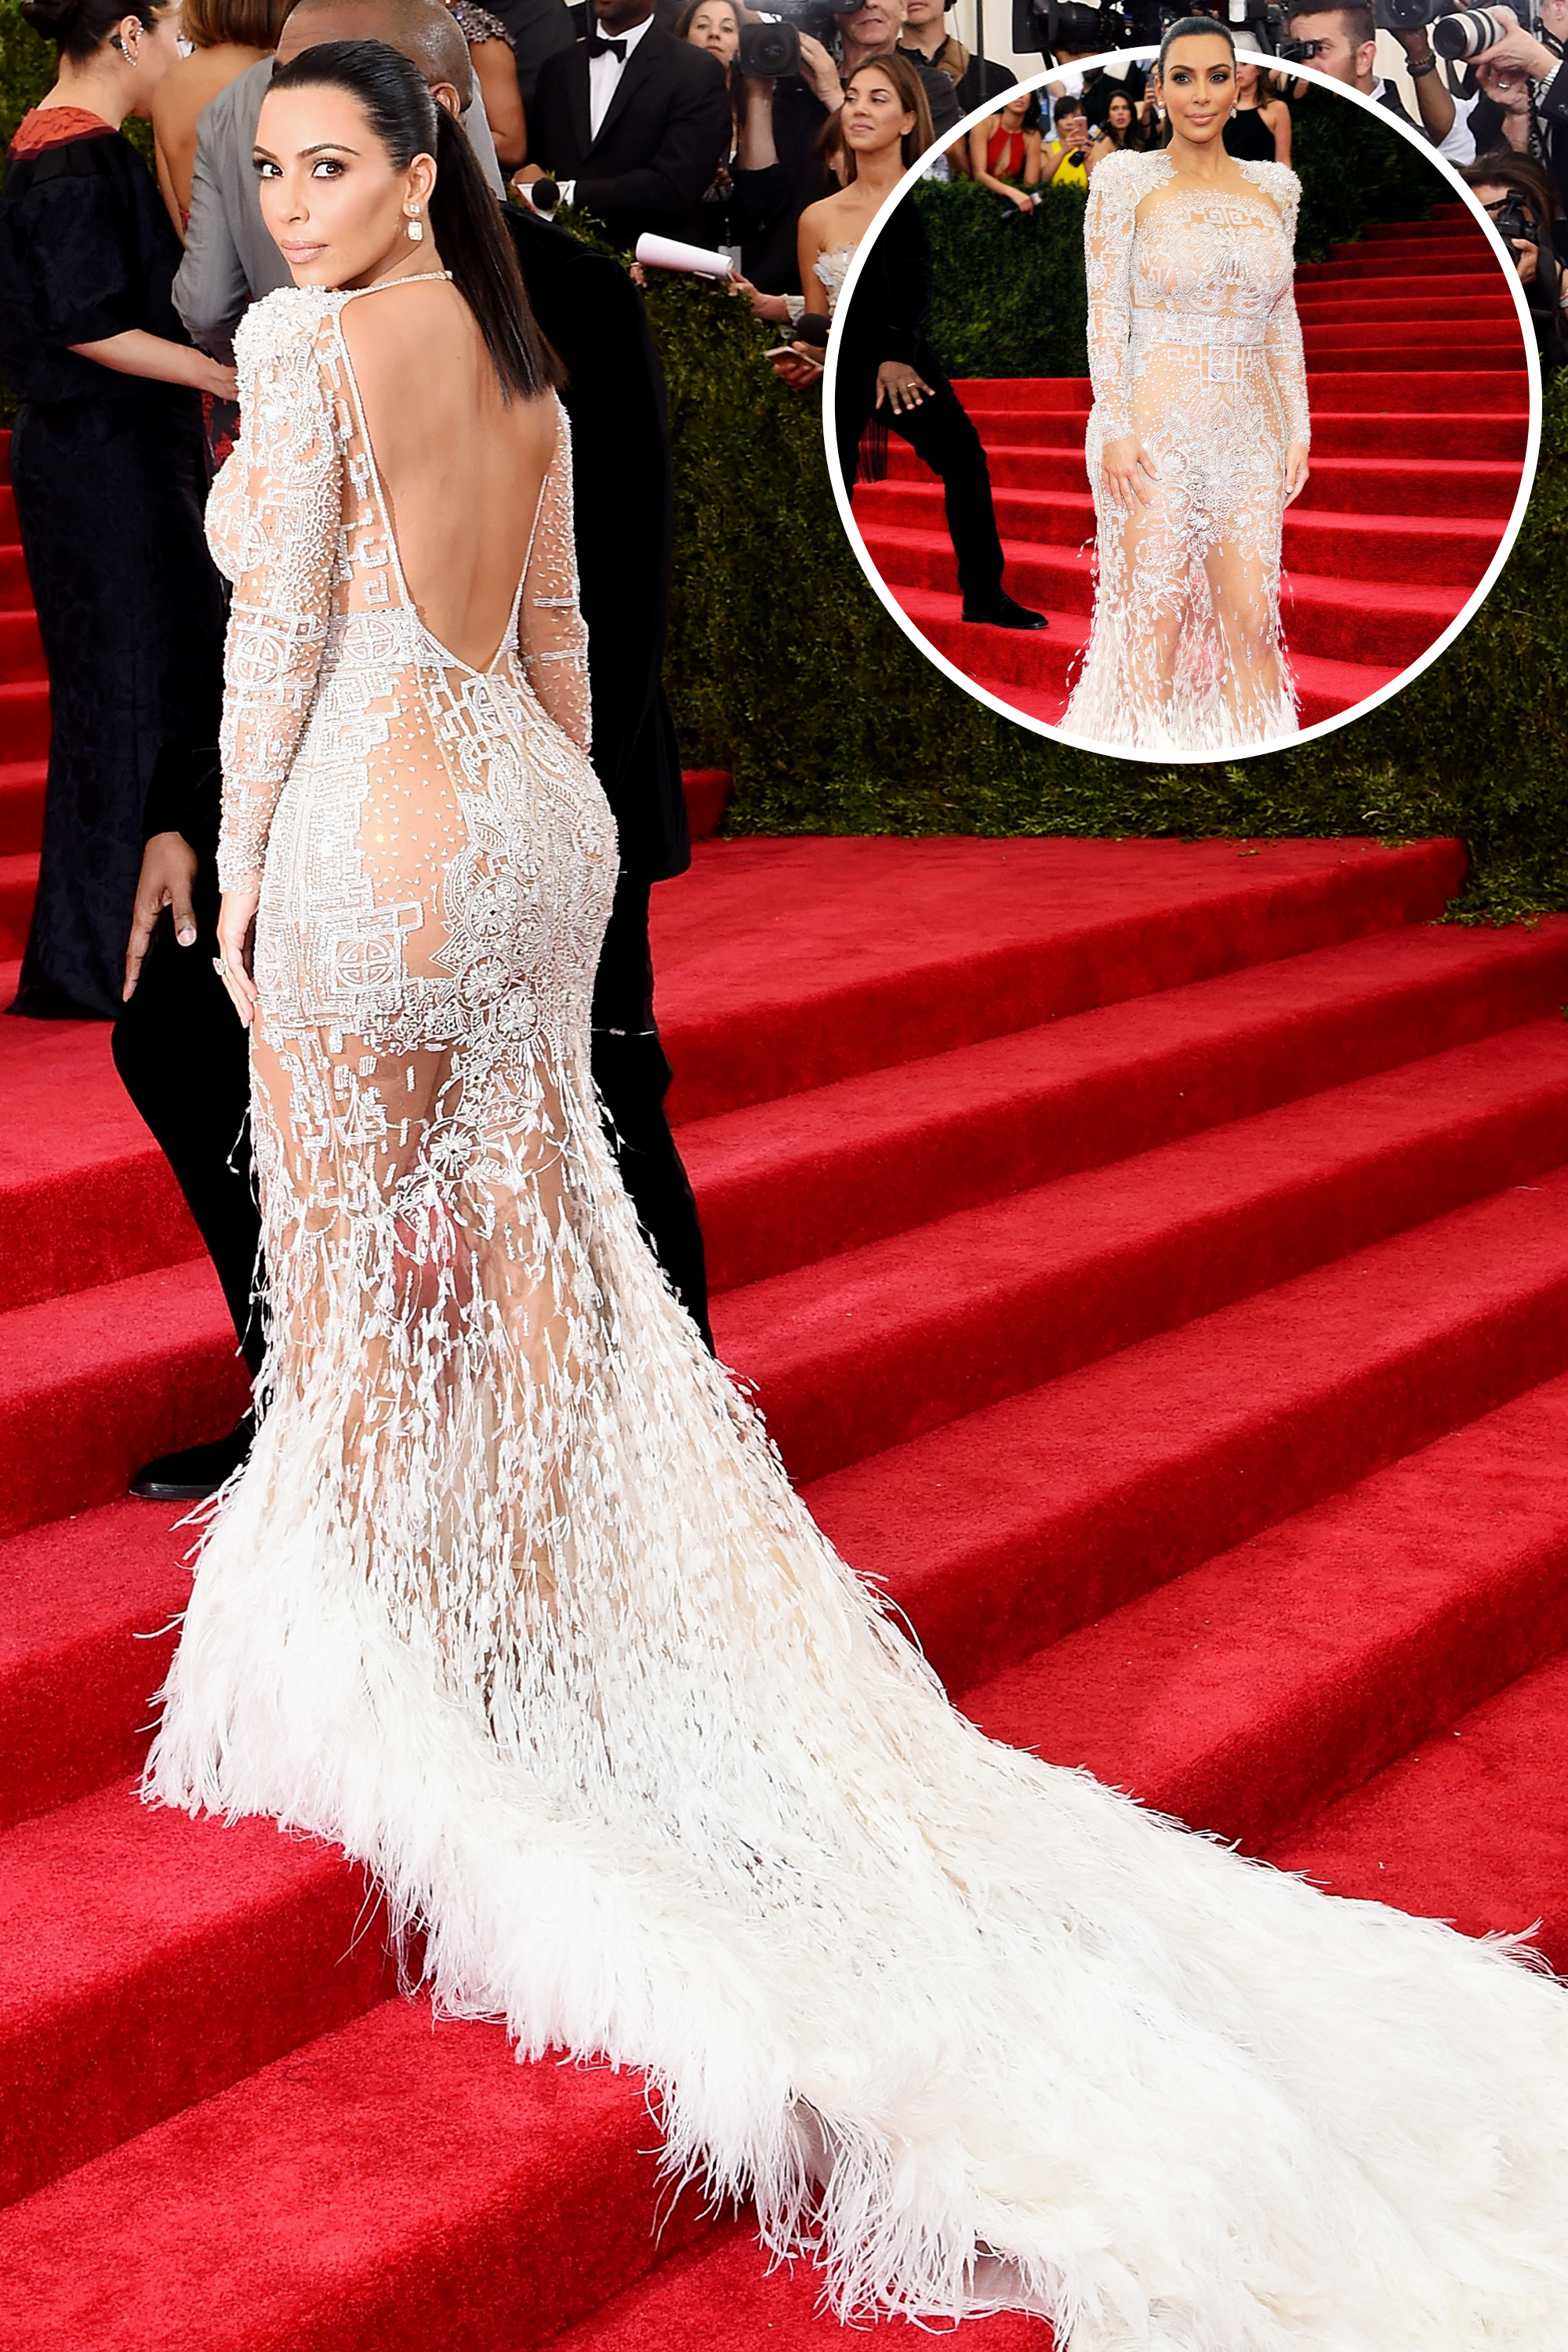 The Best Red Carpet Gowns From the Back - photo #40